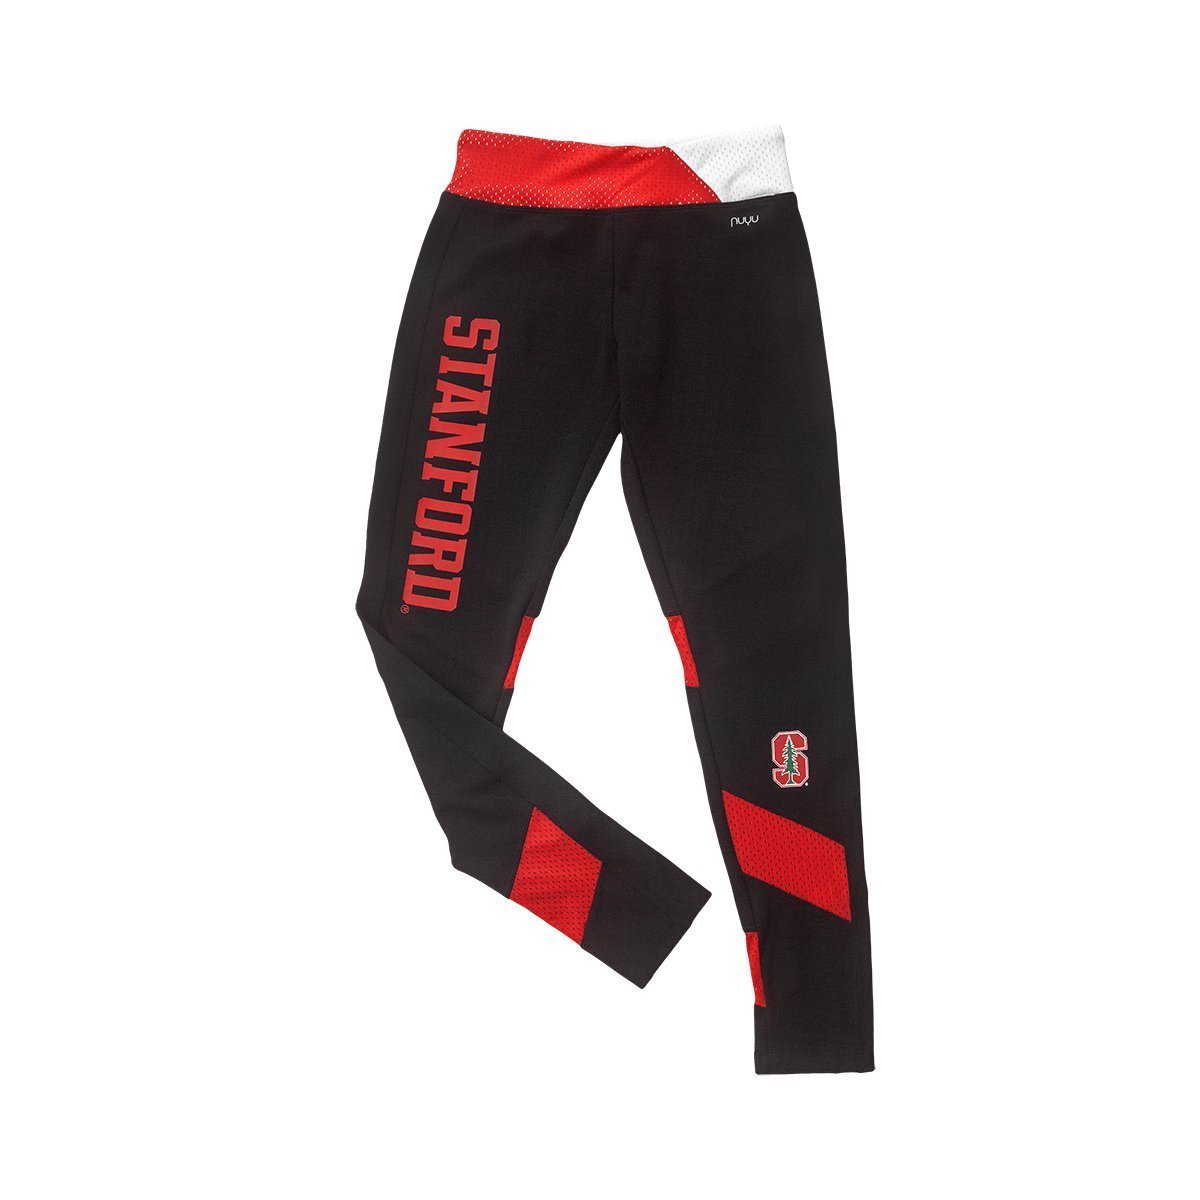 Stanford University Yoga Legging with Mesh Insert